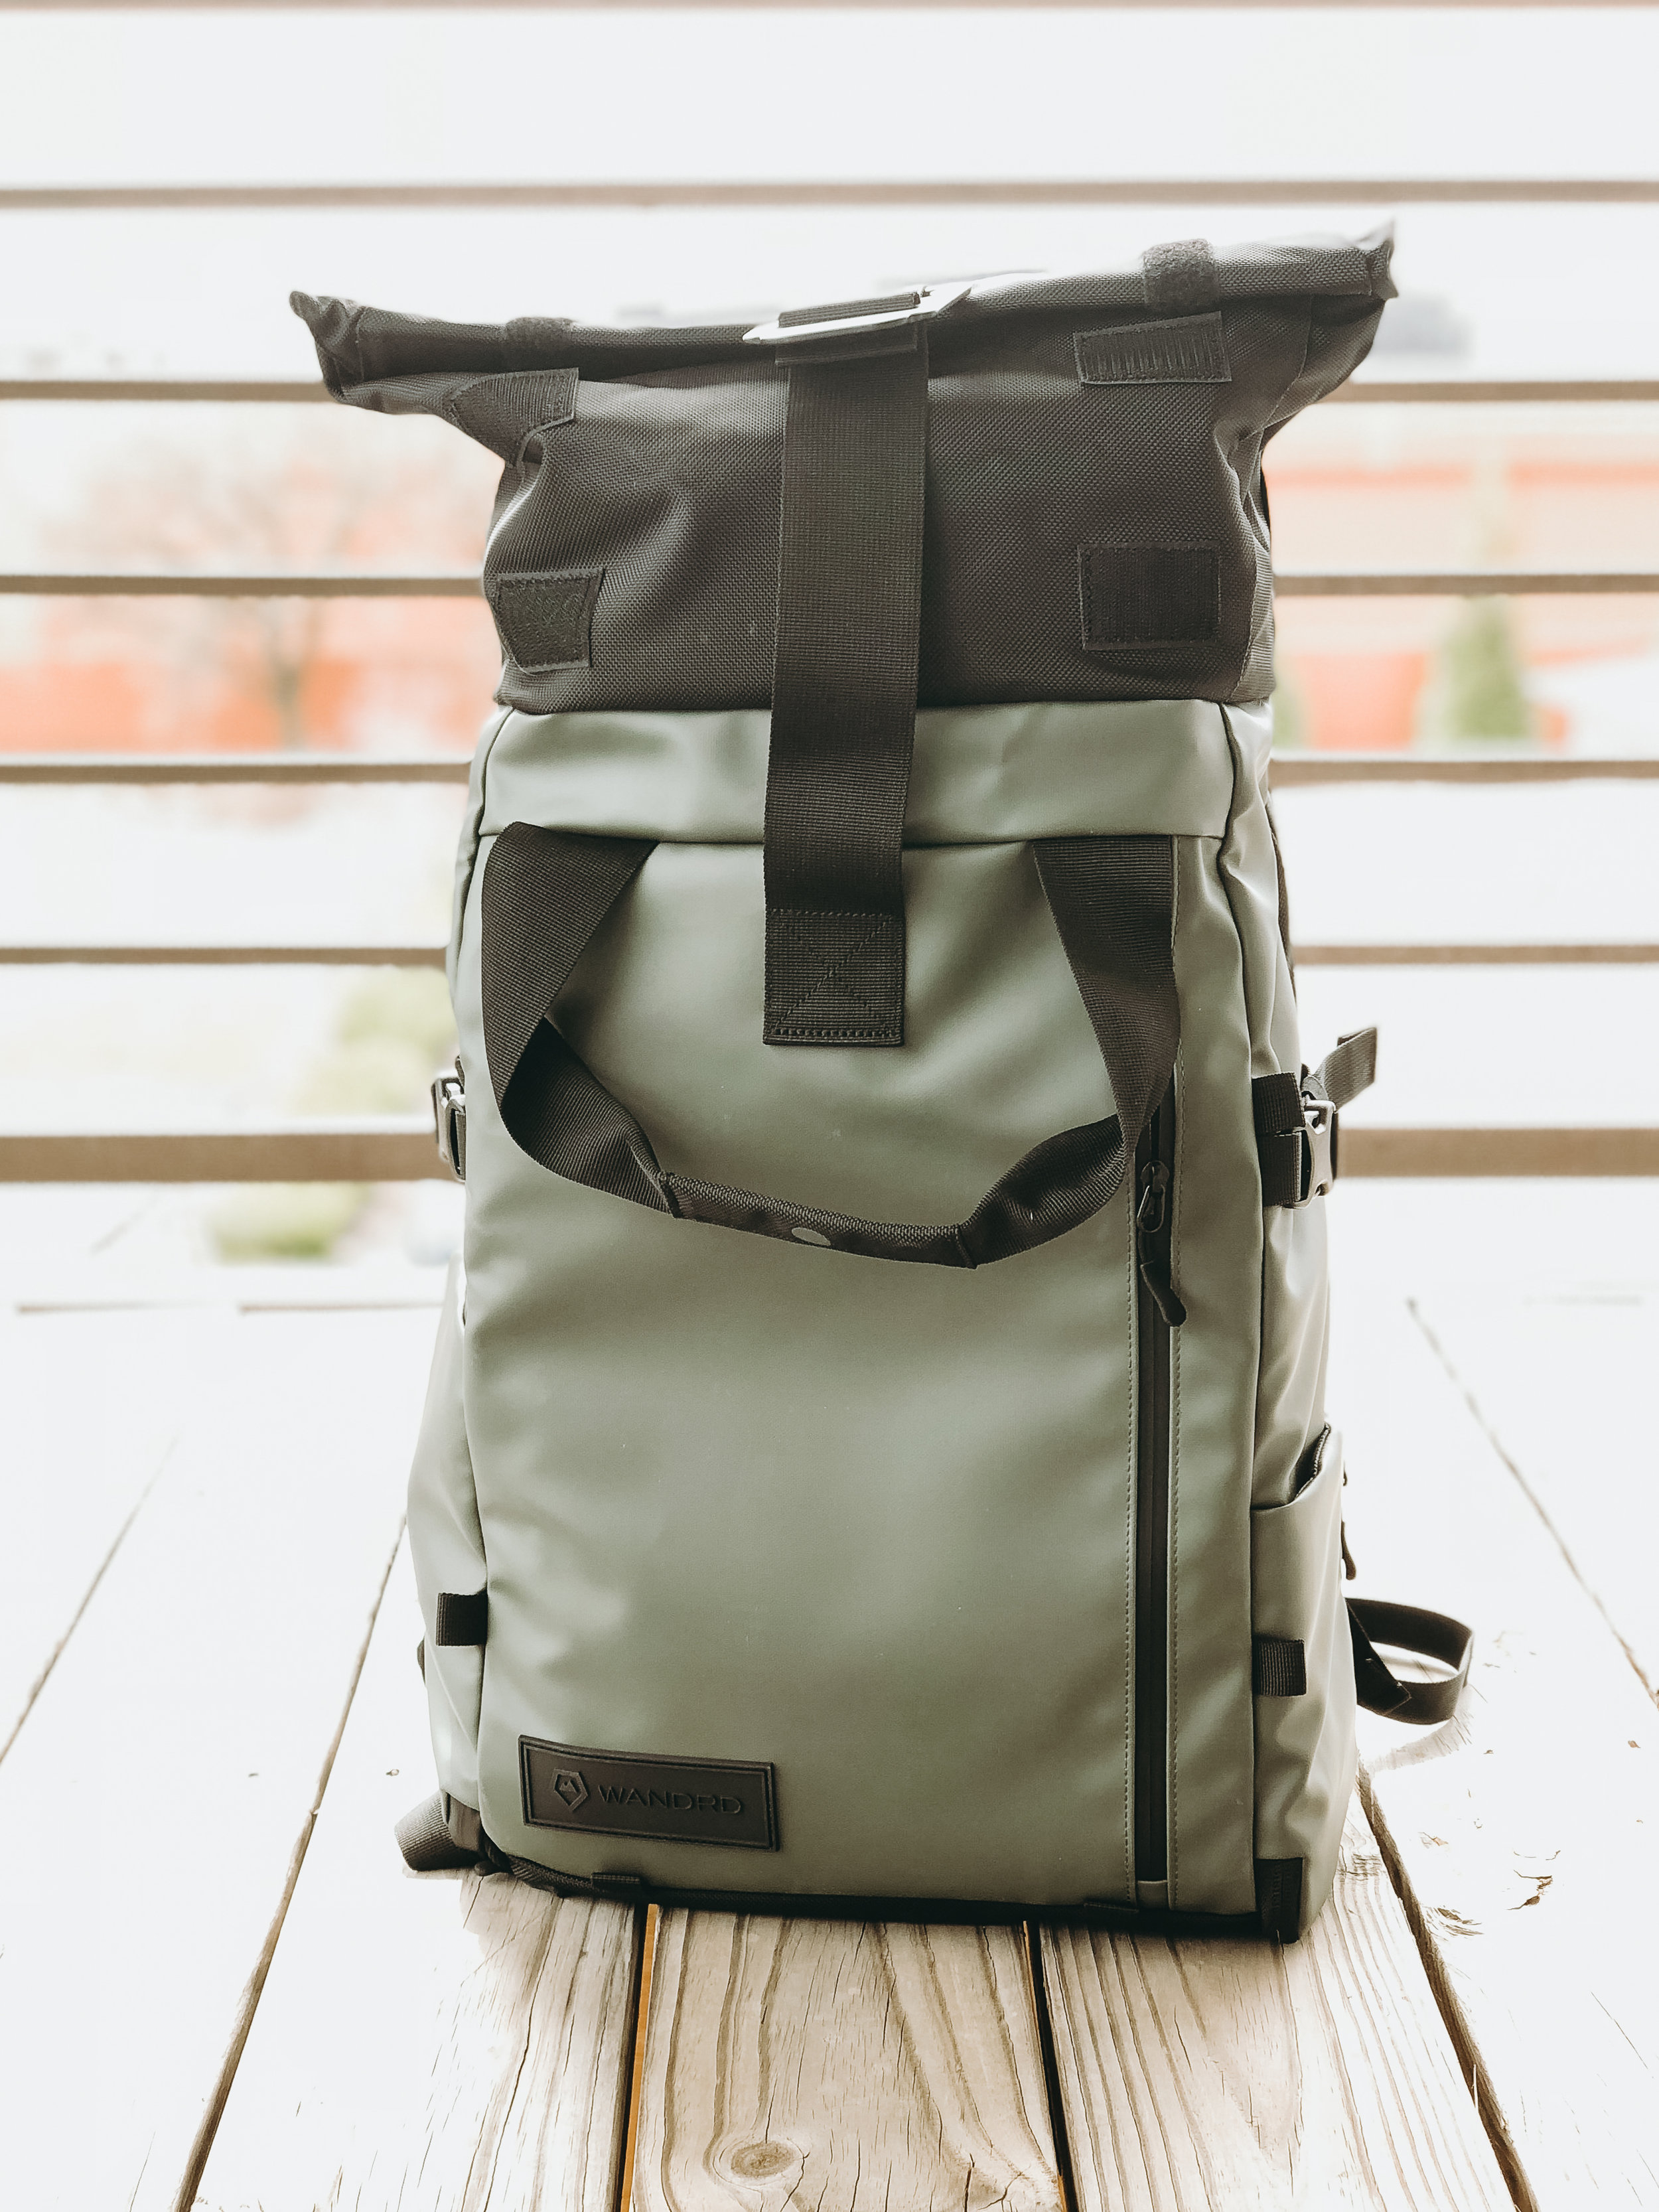 This is the bag with all the gear and water housing.